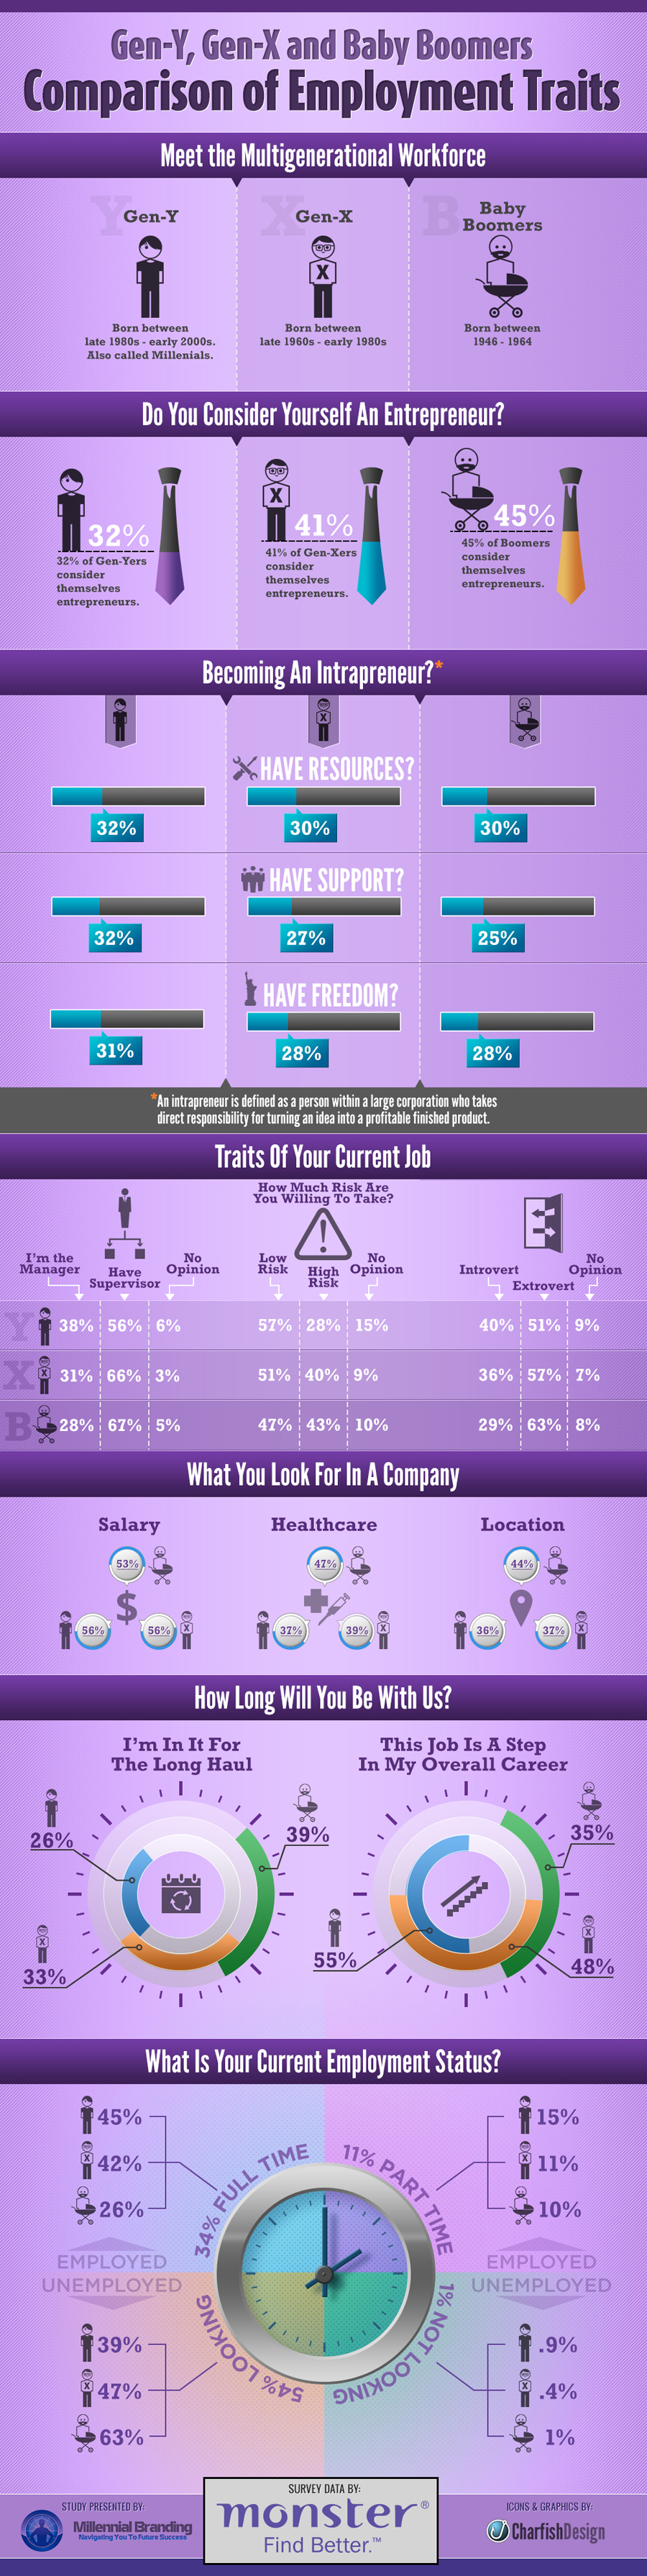 Hr Recruitment Comparing Generational Employment Traits